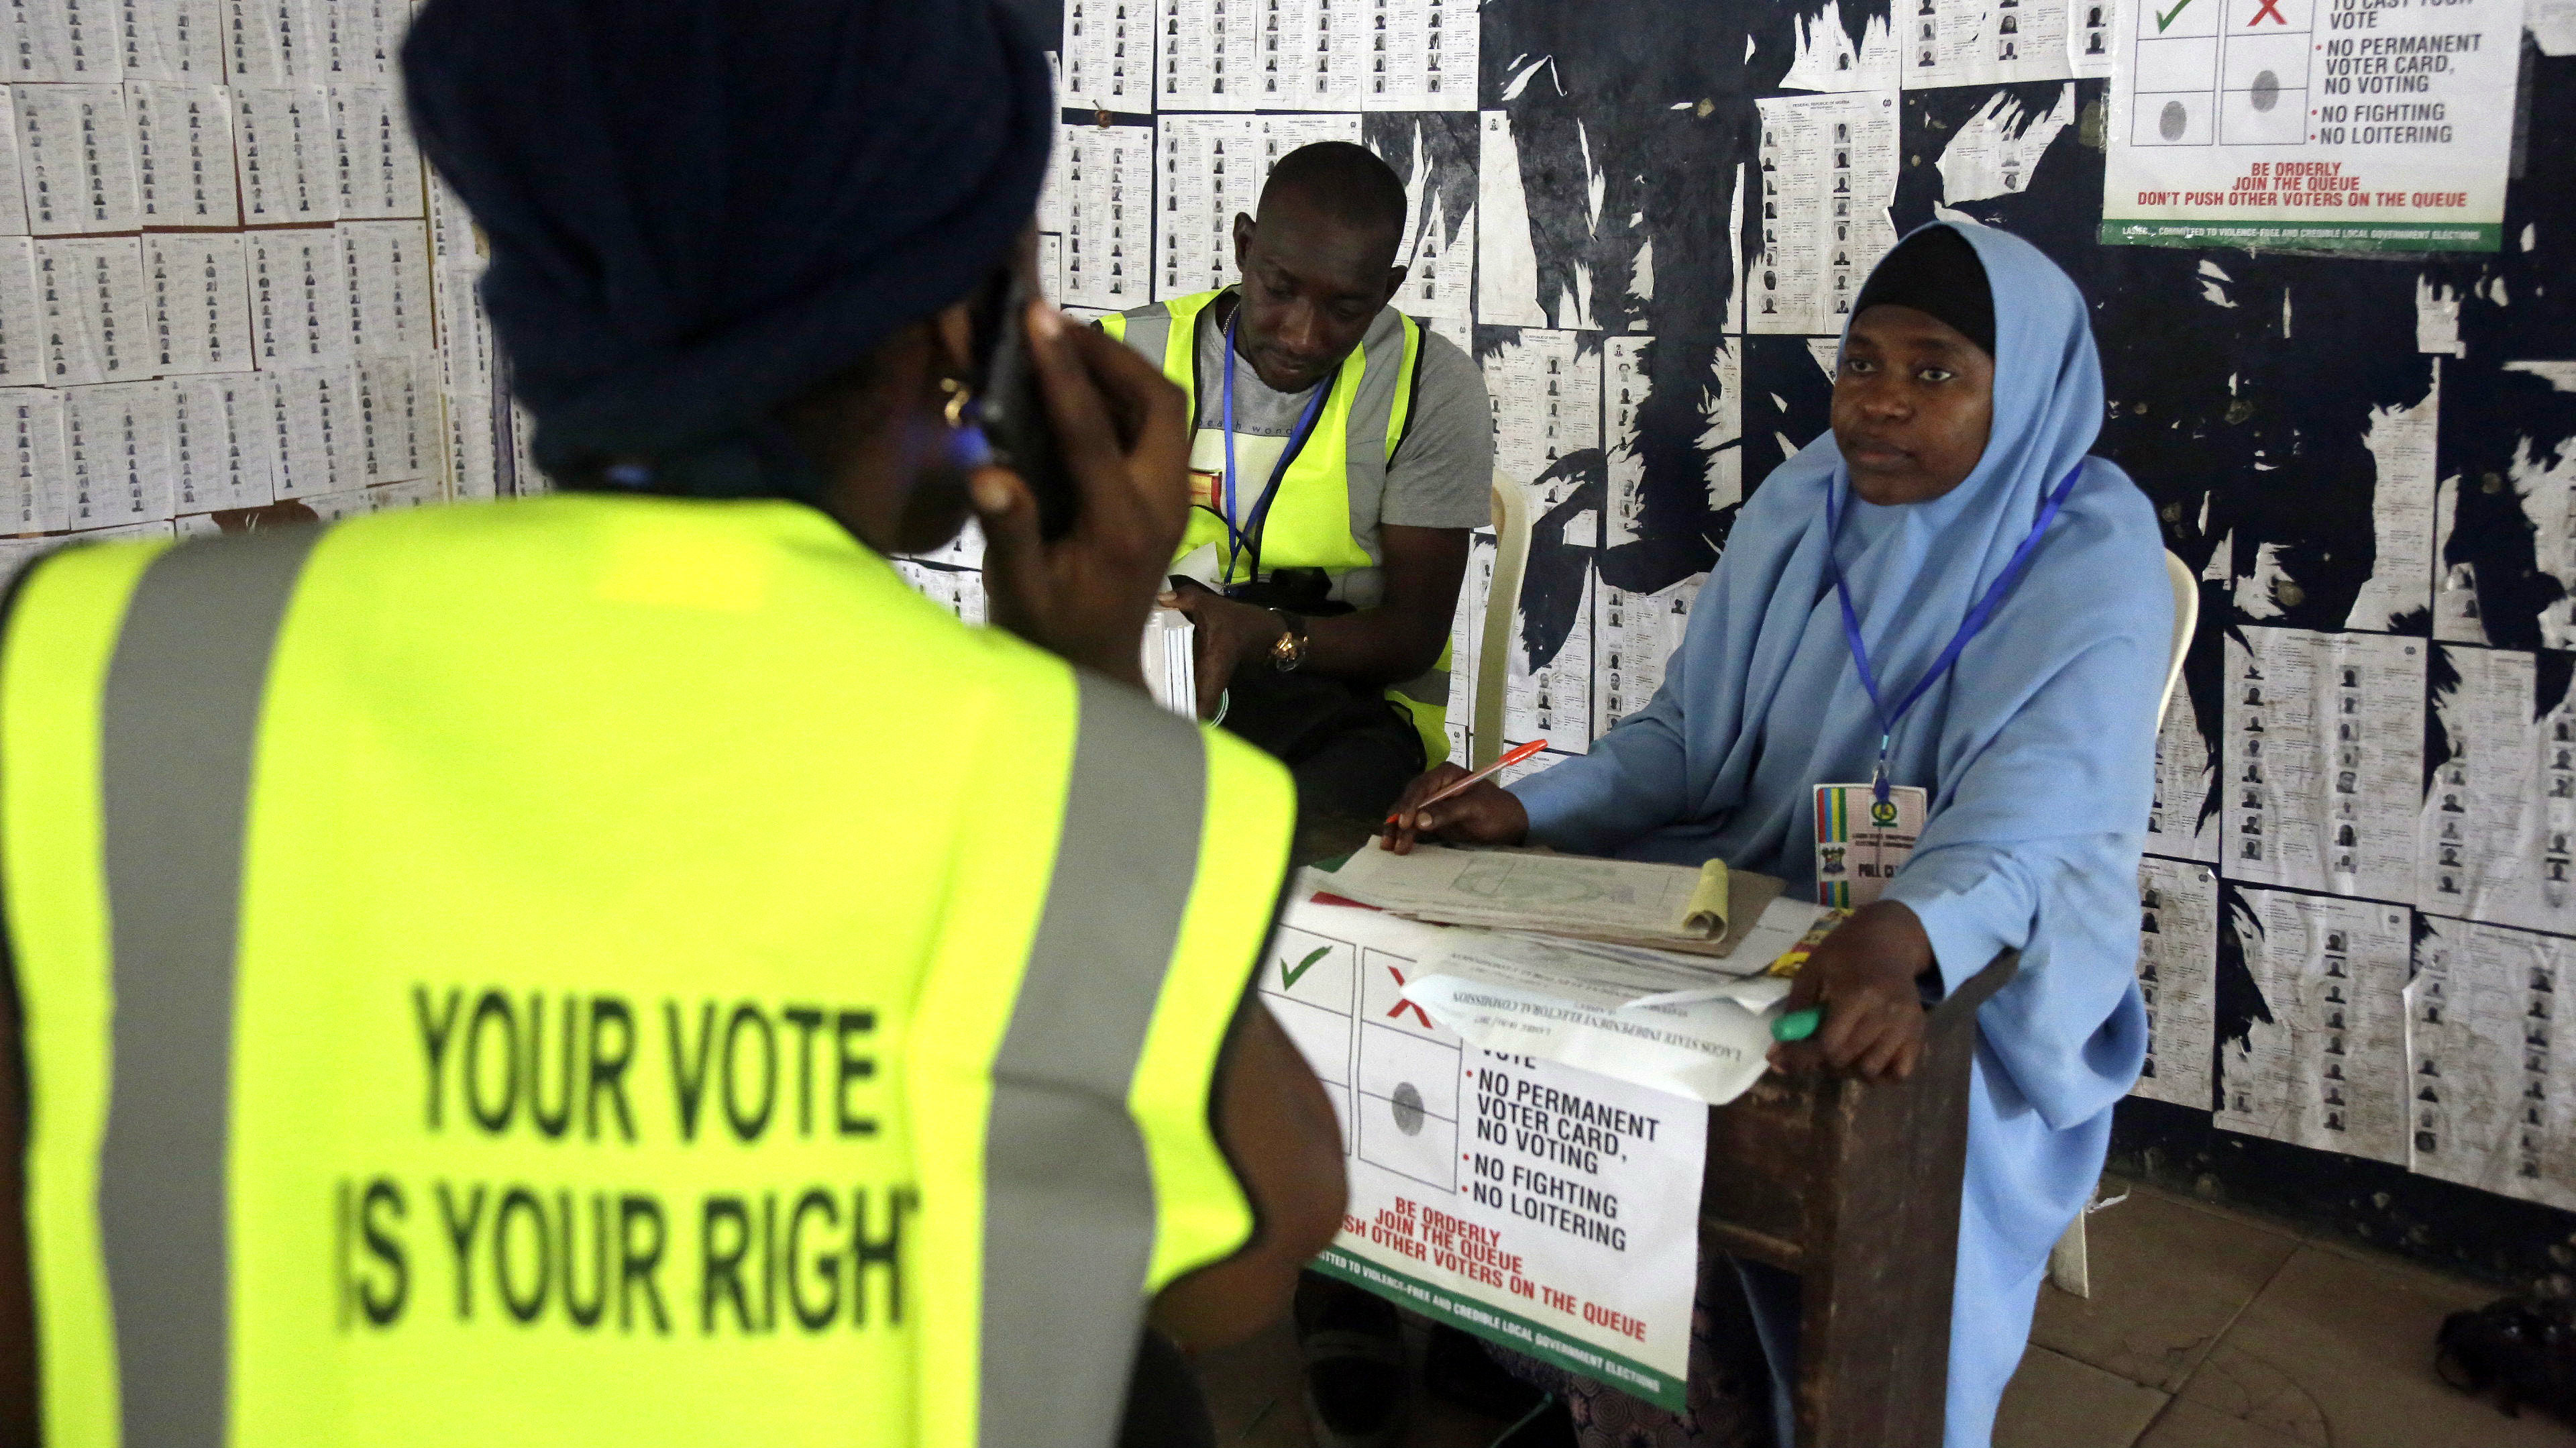 Election officials wait for voters during a local government election in Lagos, Nigeria, Saturday, July 22, 2017. Voters cast ballots Saturday for council members and leaders of local government areas. Voting mostly went smoothly, although some polling stations saw ballots arrive hours late due to a downpour